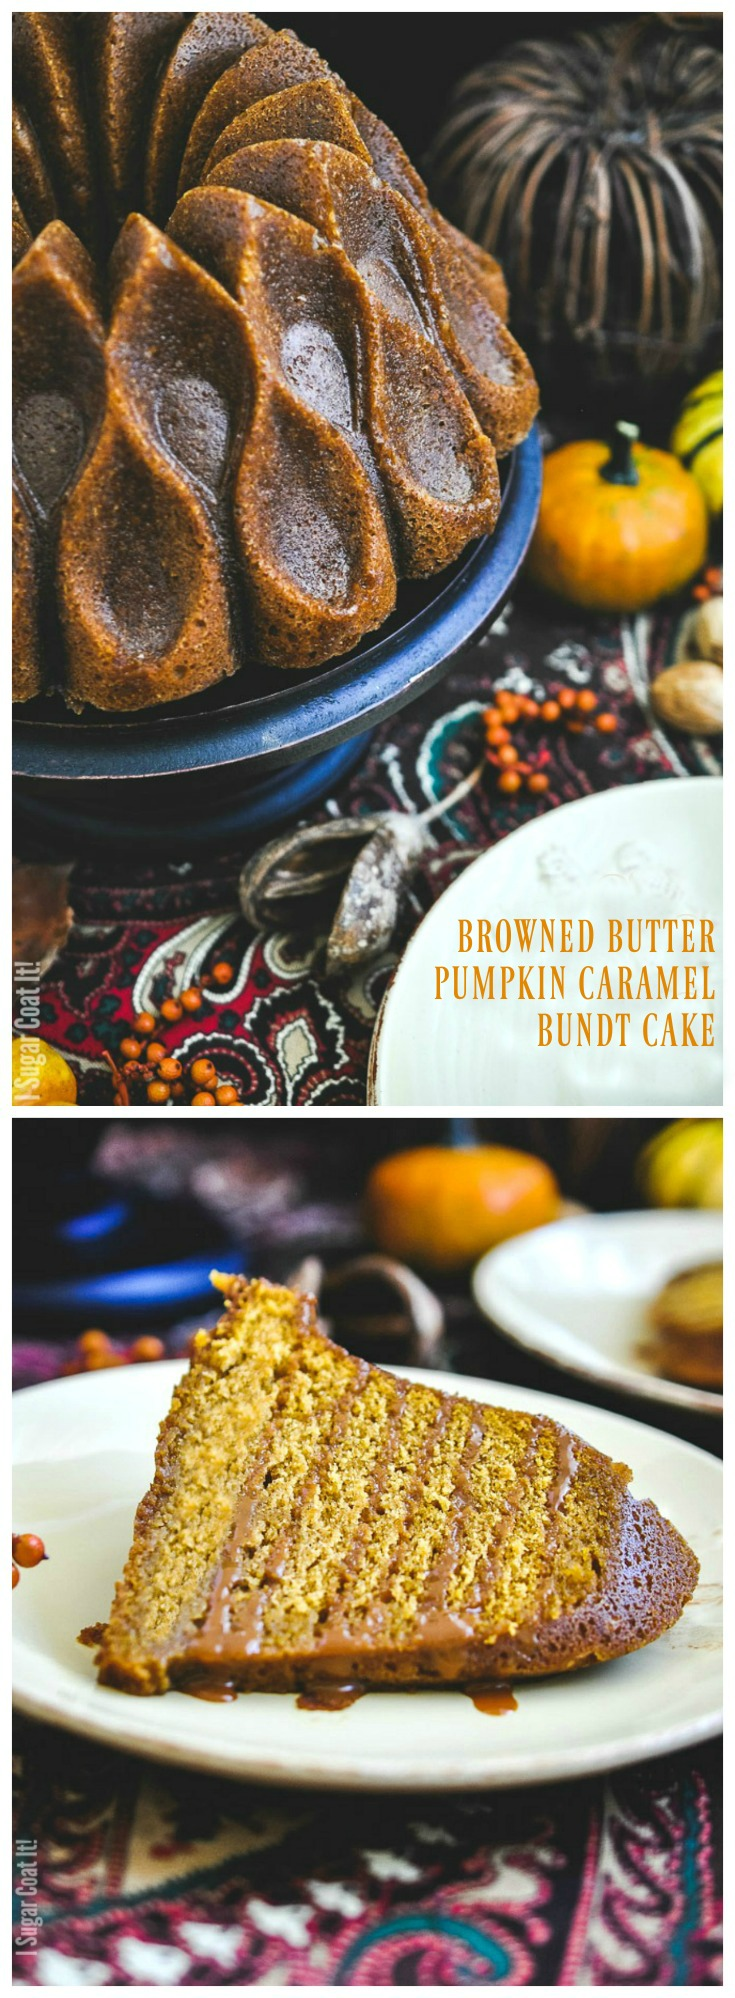 Lightly spiced, with a tender crumb and caramel drizzle, this Browned Butter Pumpkin Caramel Bundt Cake is bursting with the flavours of fall. A perfect addition to your Thanksgiving table!